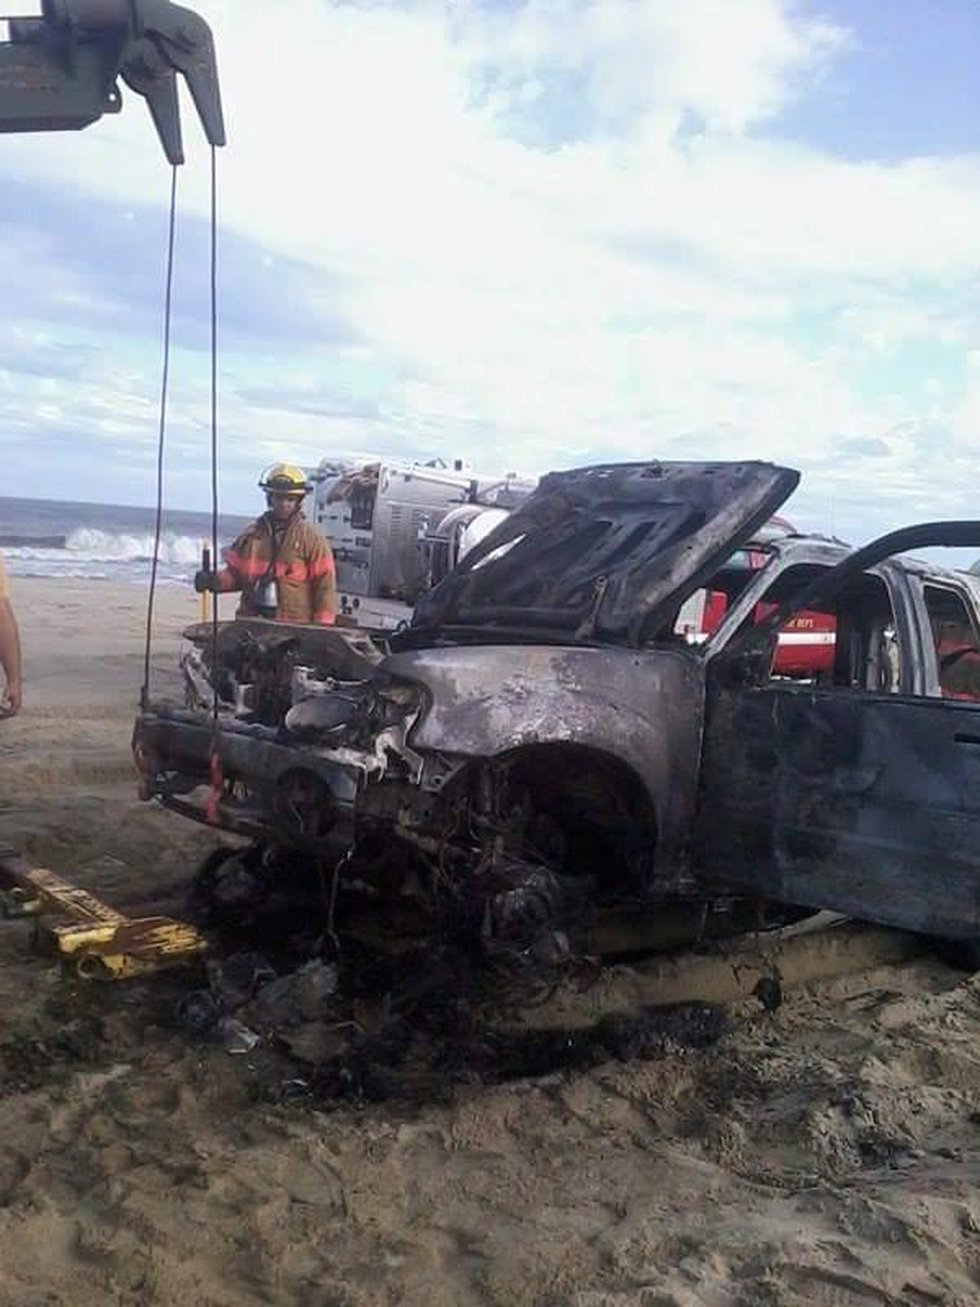 Emergency crews responded to a car on fire at Fort Fisher. (Source: Chance Murray)